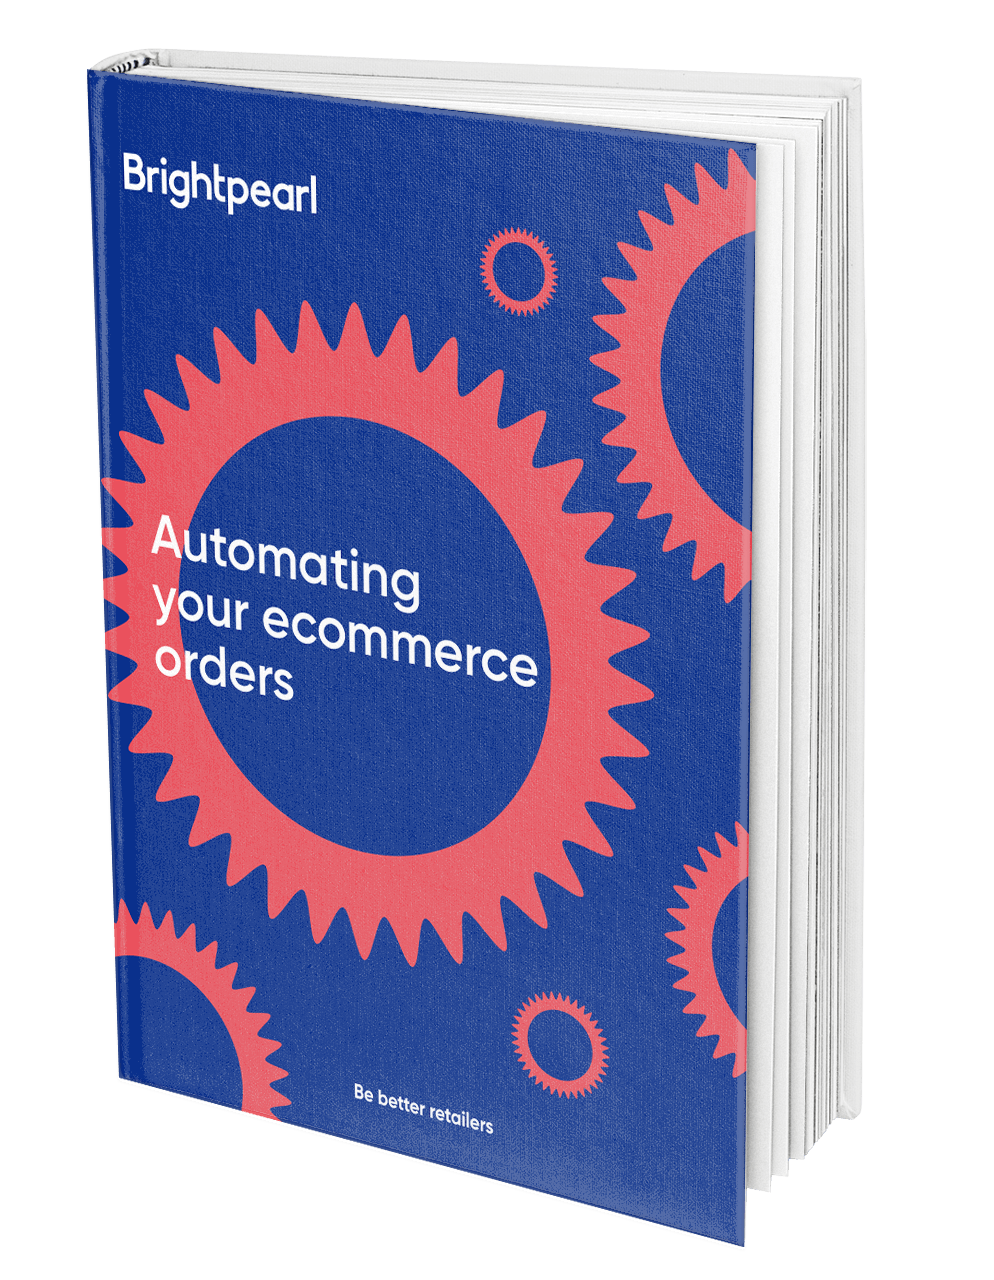 Automating-your-ecommerce-orders_3D.png